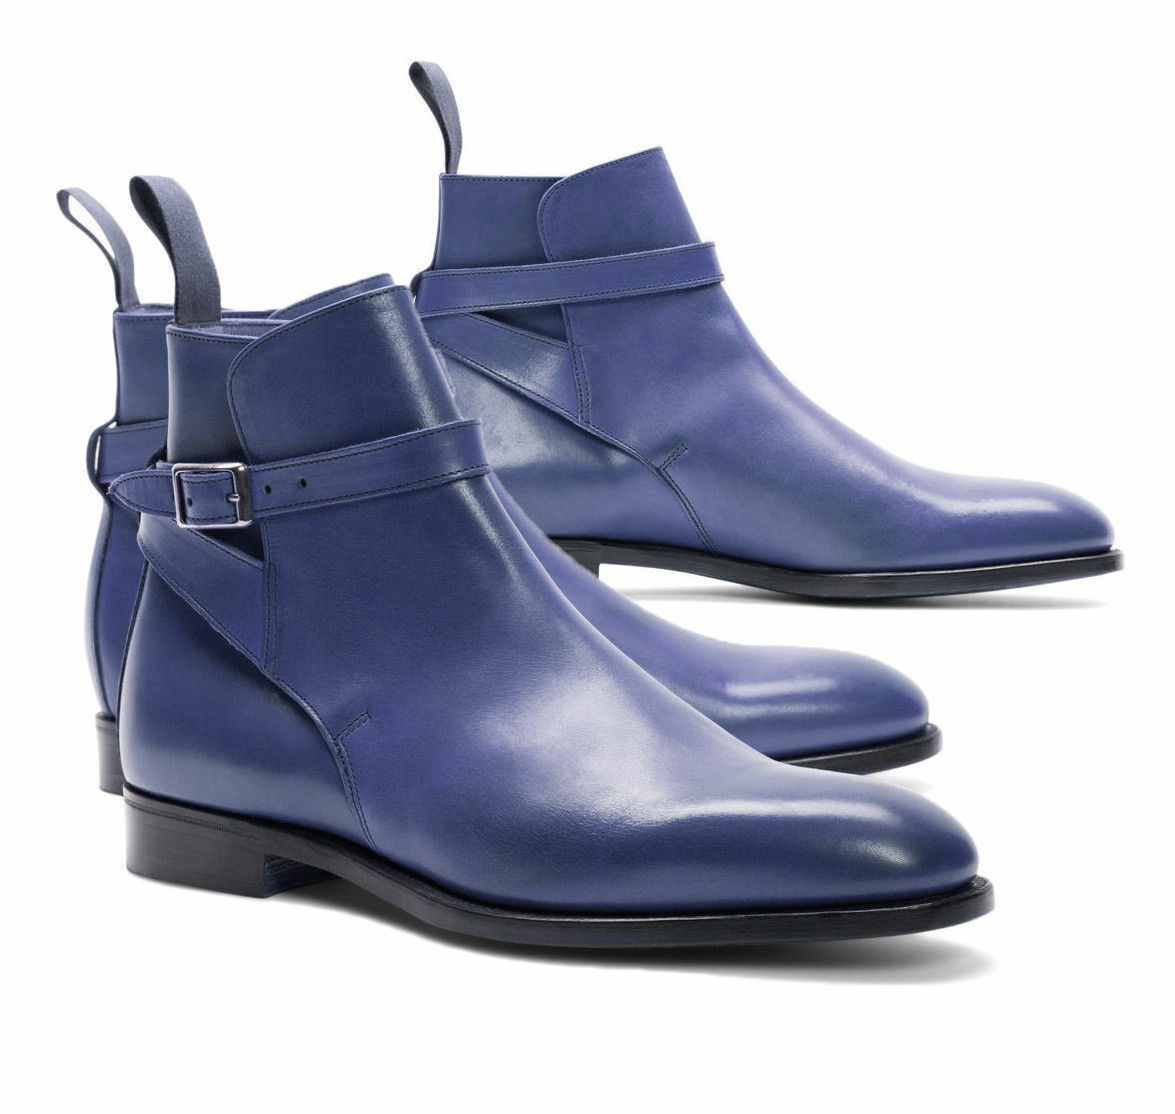 Mens Handmade Boots Jodhpurs Navy Leather Ankle High Dress Formal Wear shoes New